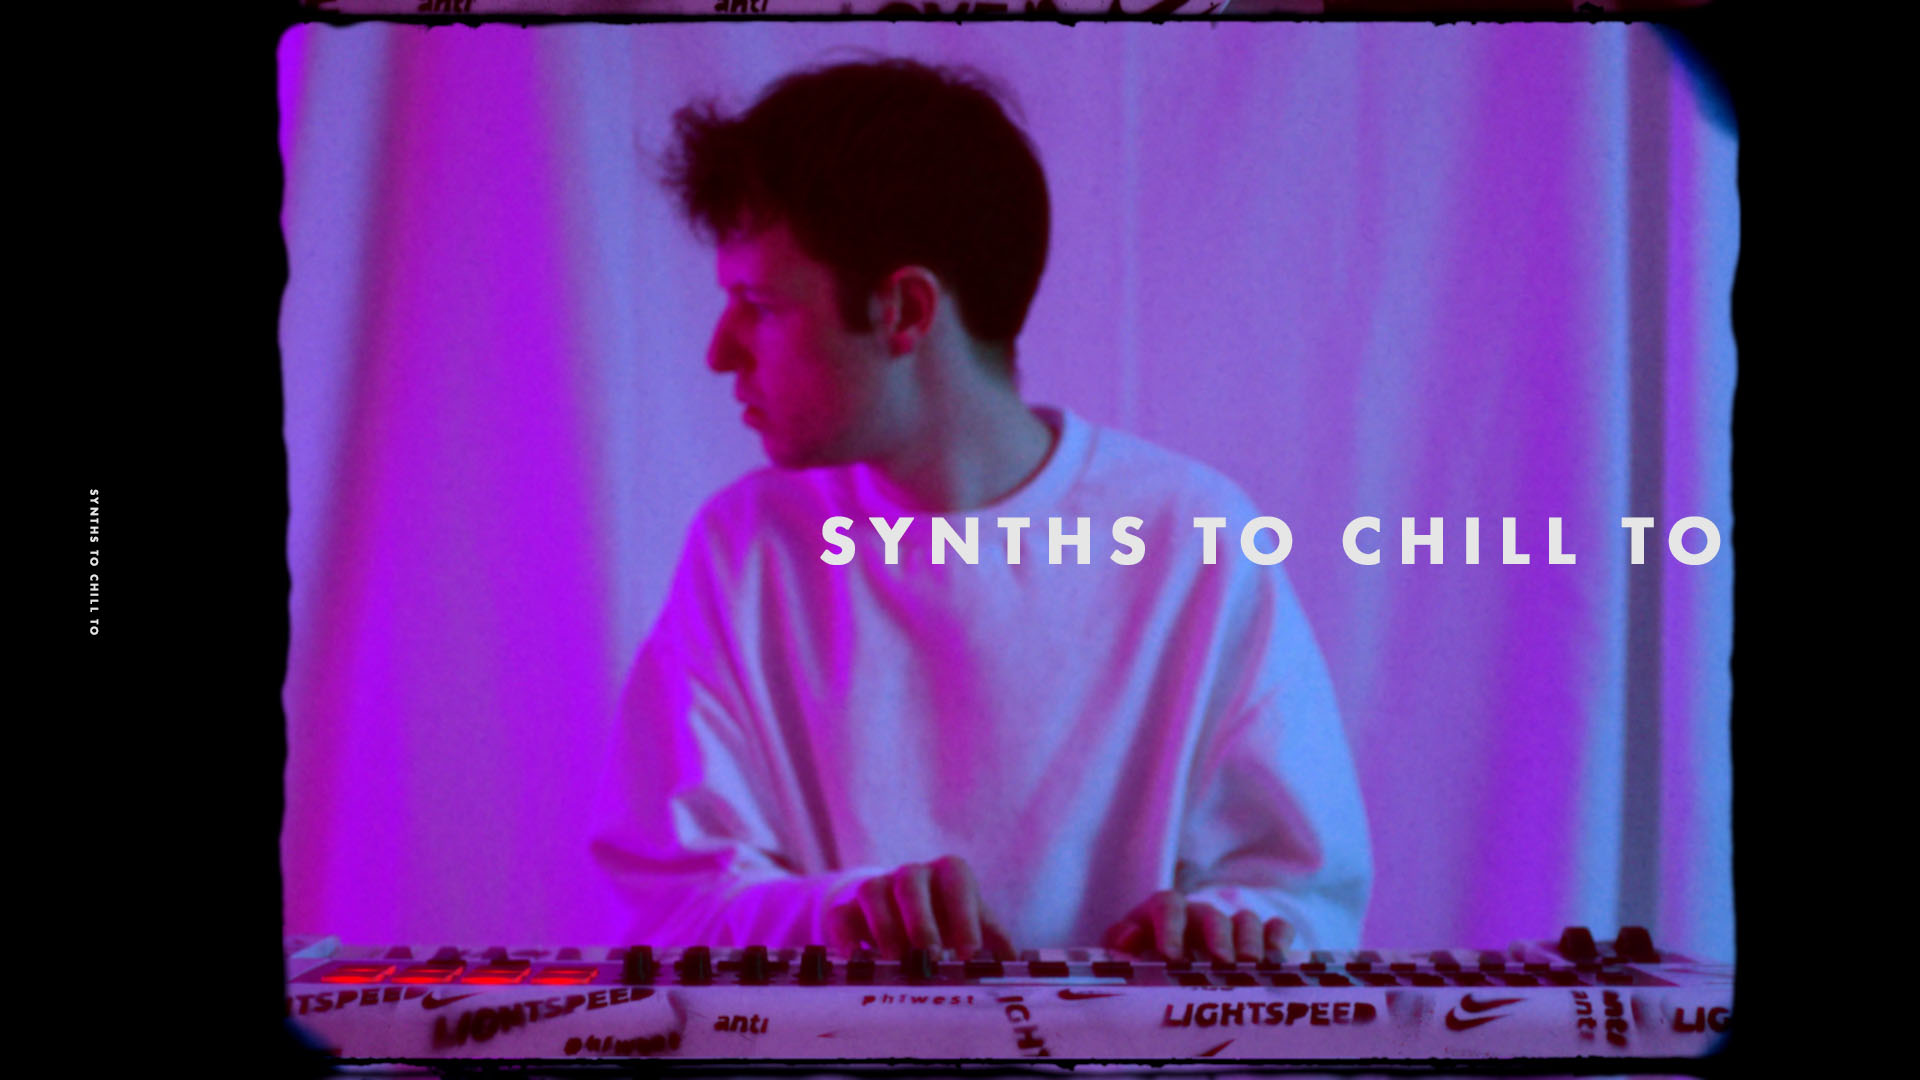 synths to chill to